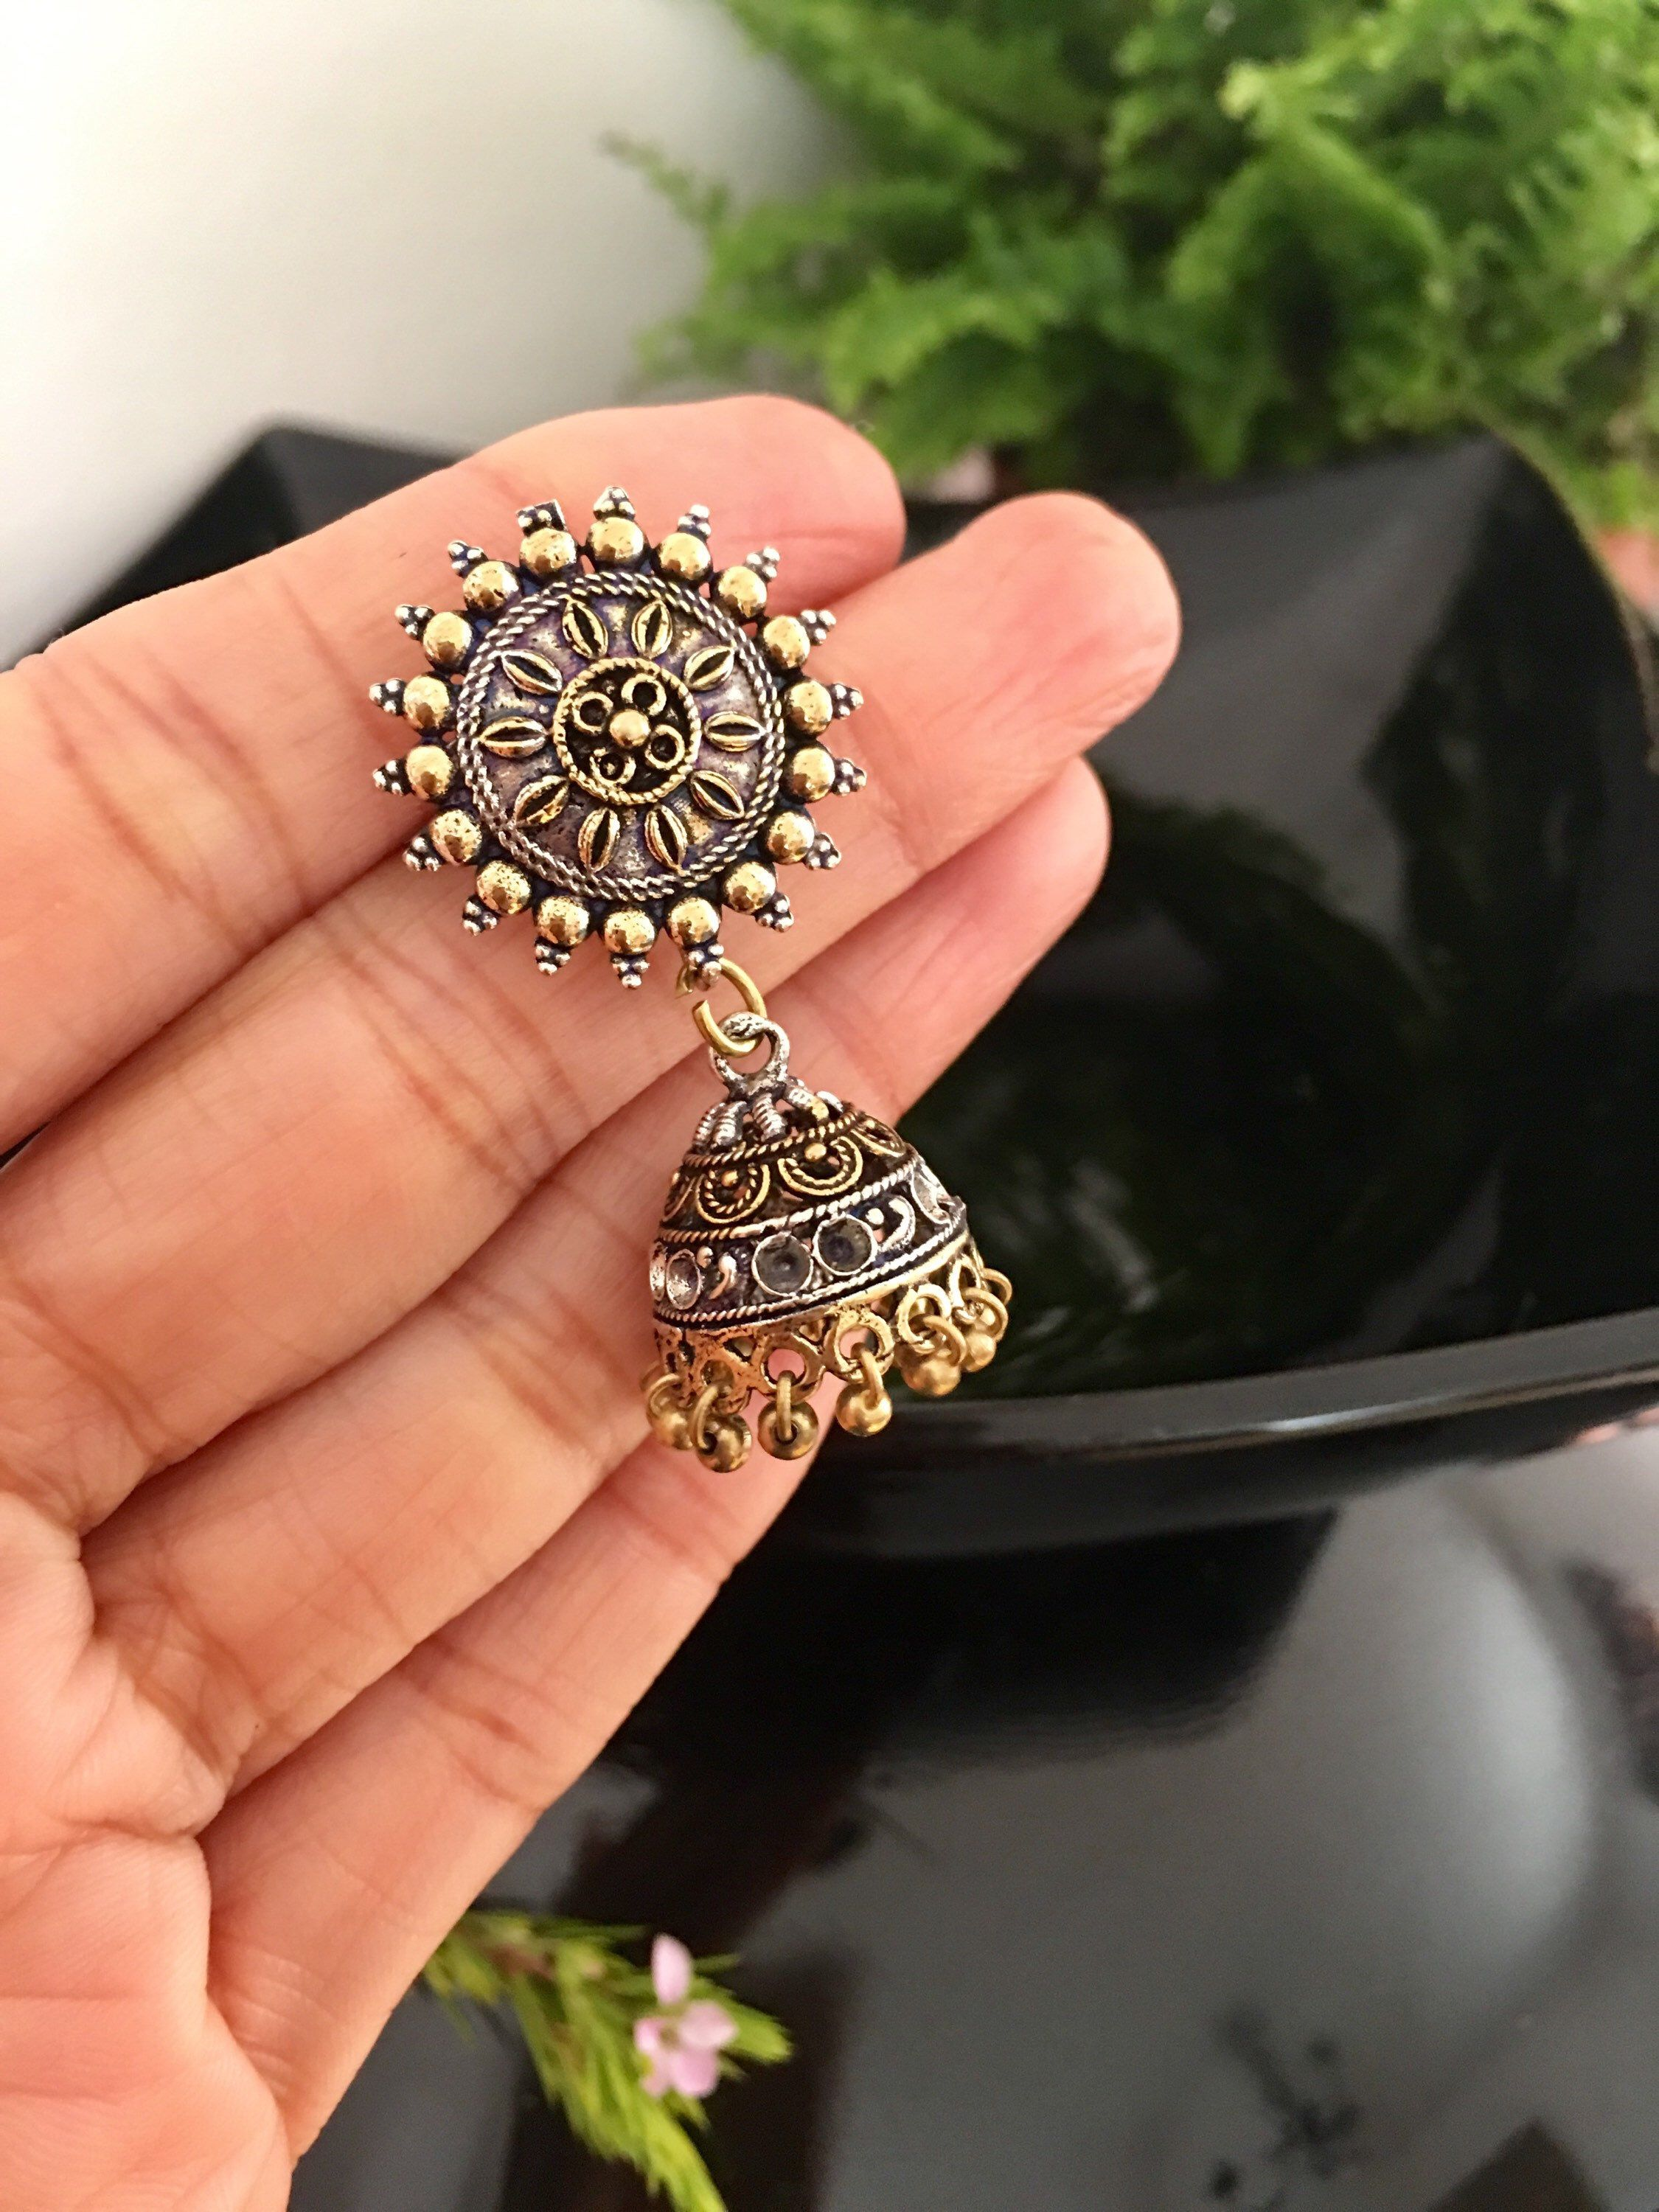 5356a21e8 Round Indian Traditional Silver Jhumka Earrings, Ethnic Indian Drop ...